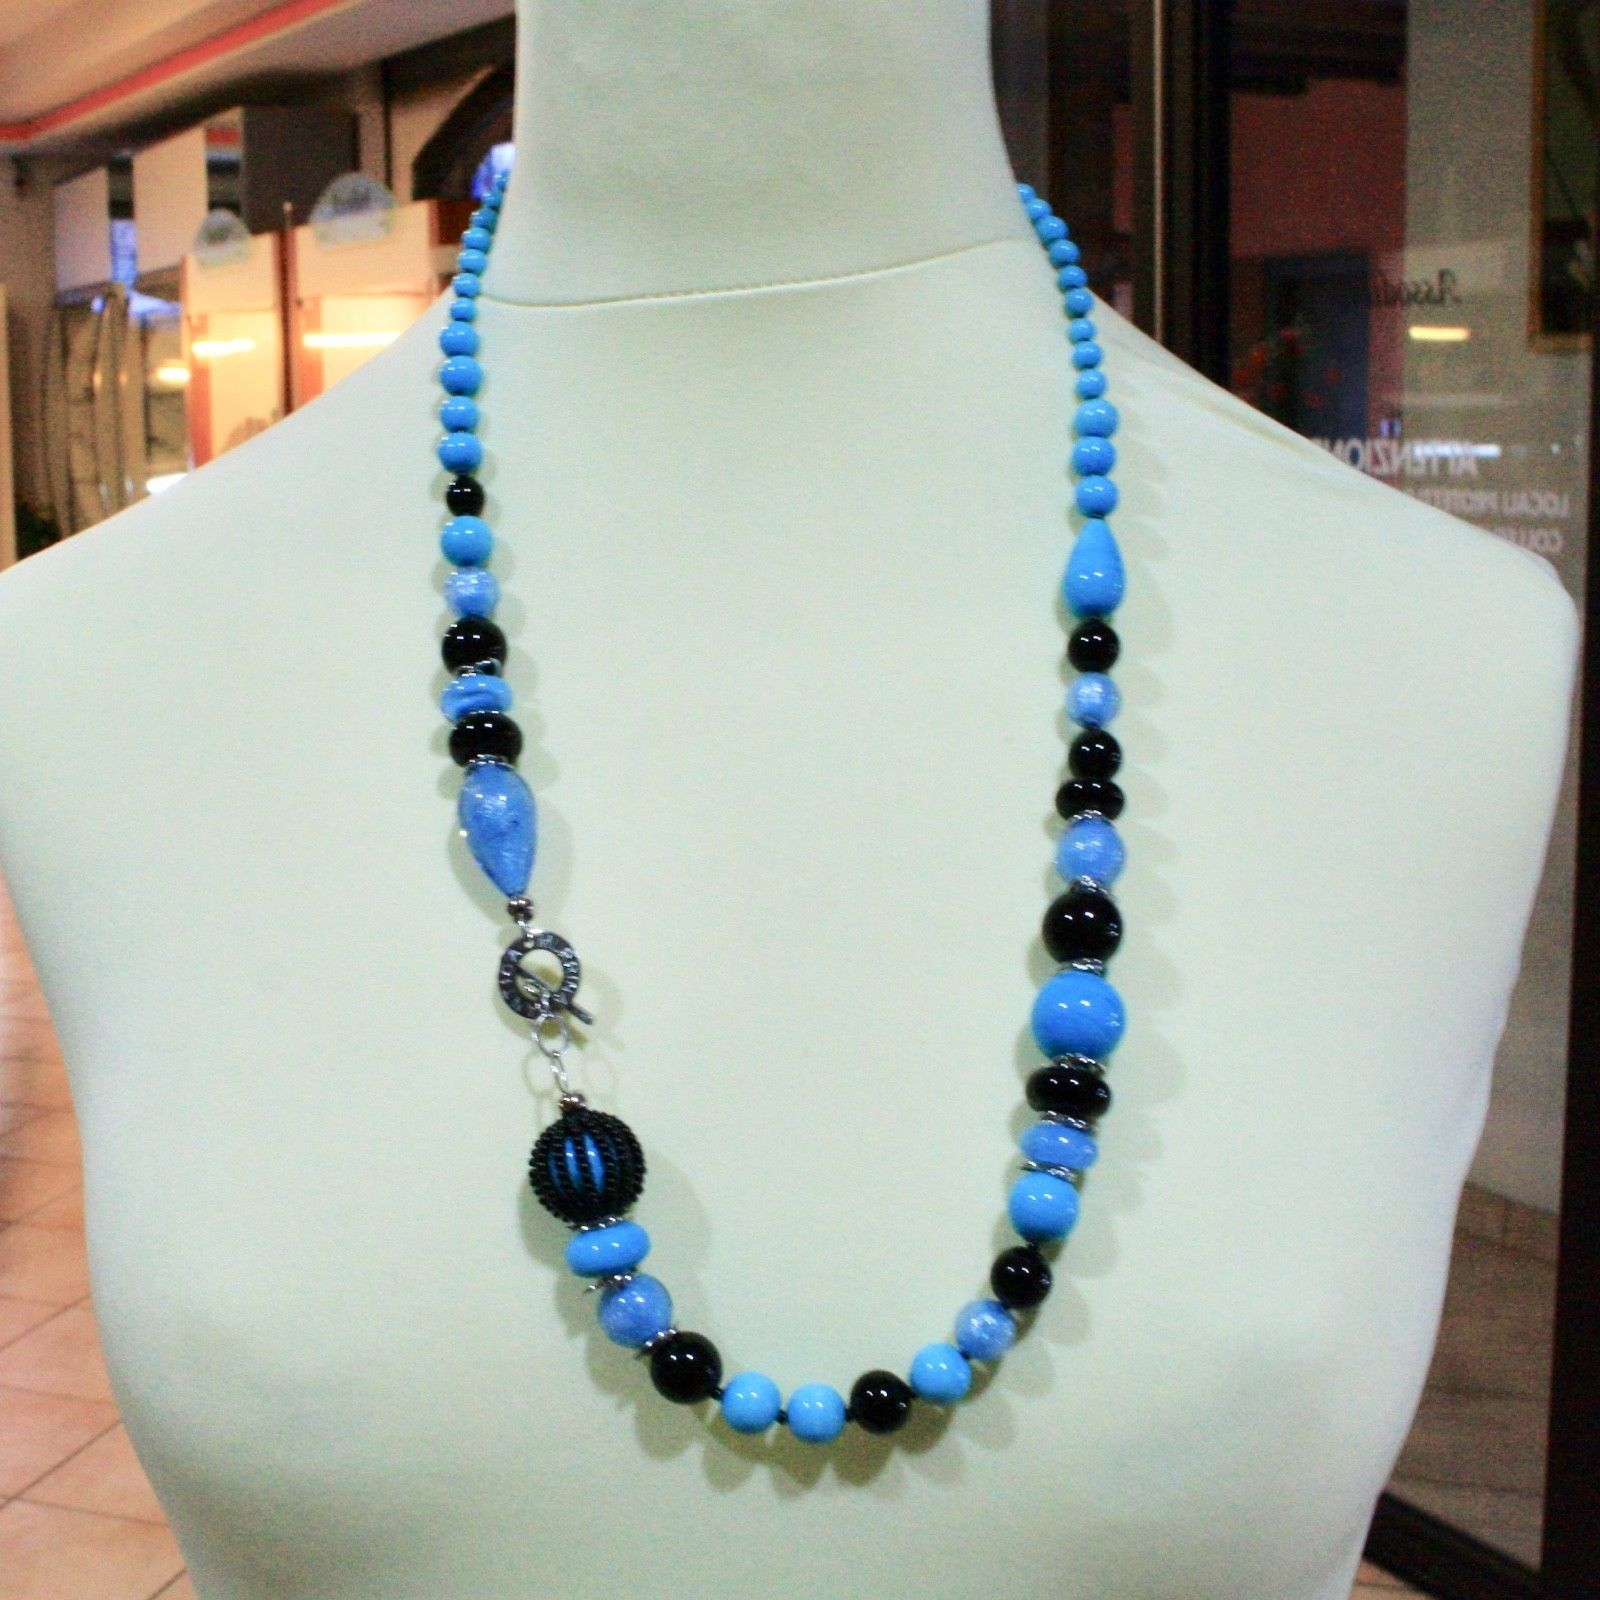 ANTICA MURRINA VENEZIA NECKLACE WITH MURANO GLASS BLUE BLACK TURQUOISE COA06A07